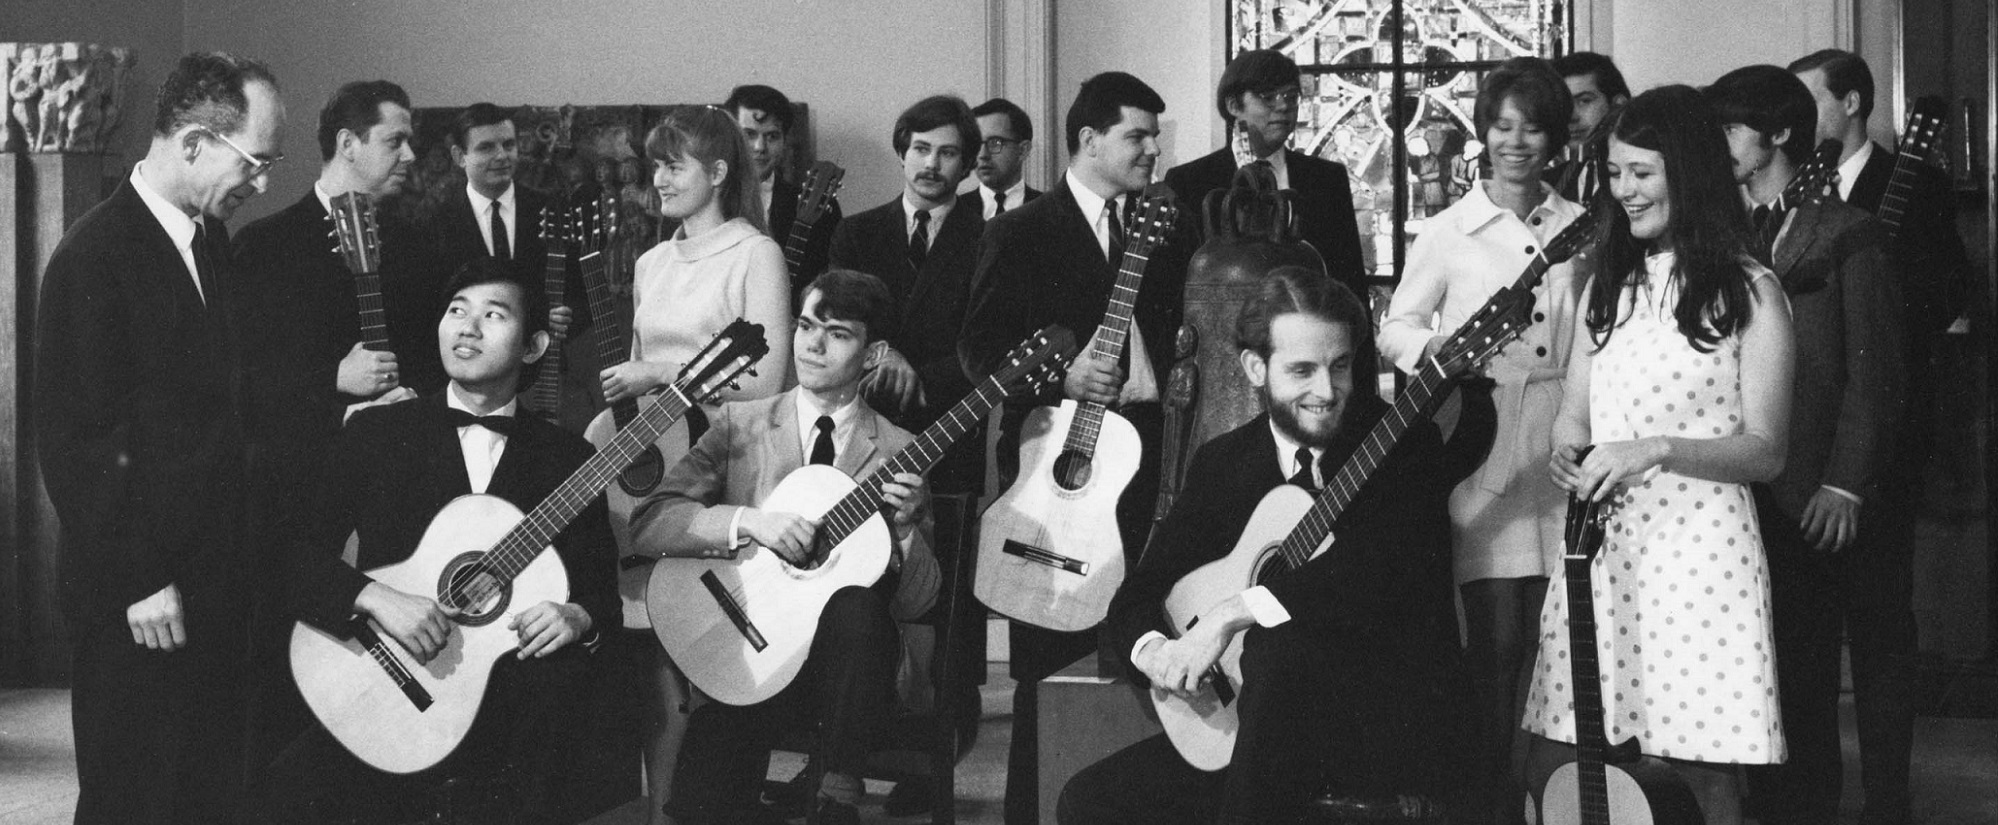 Image of the Peabody Guitar Ensemble